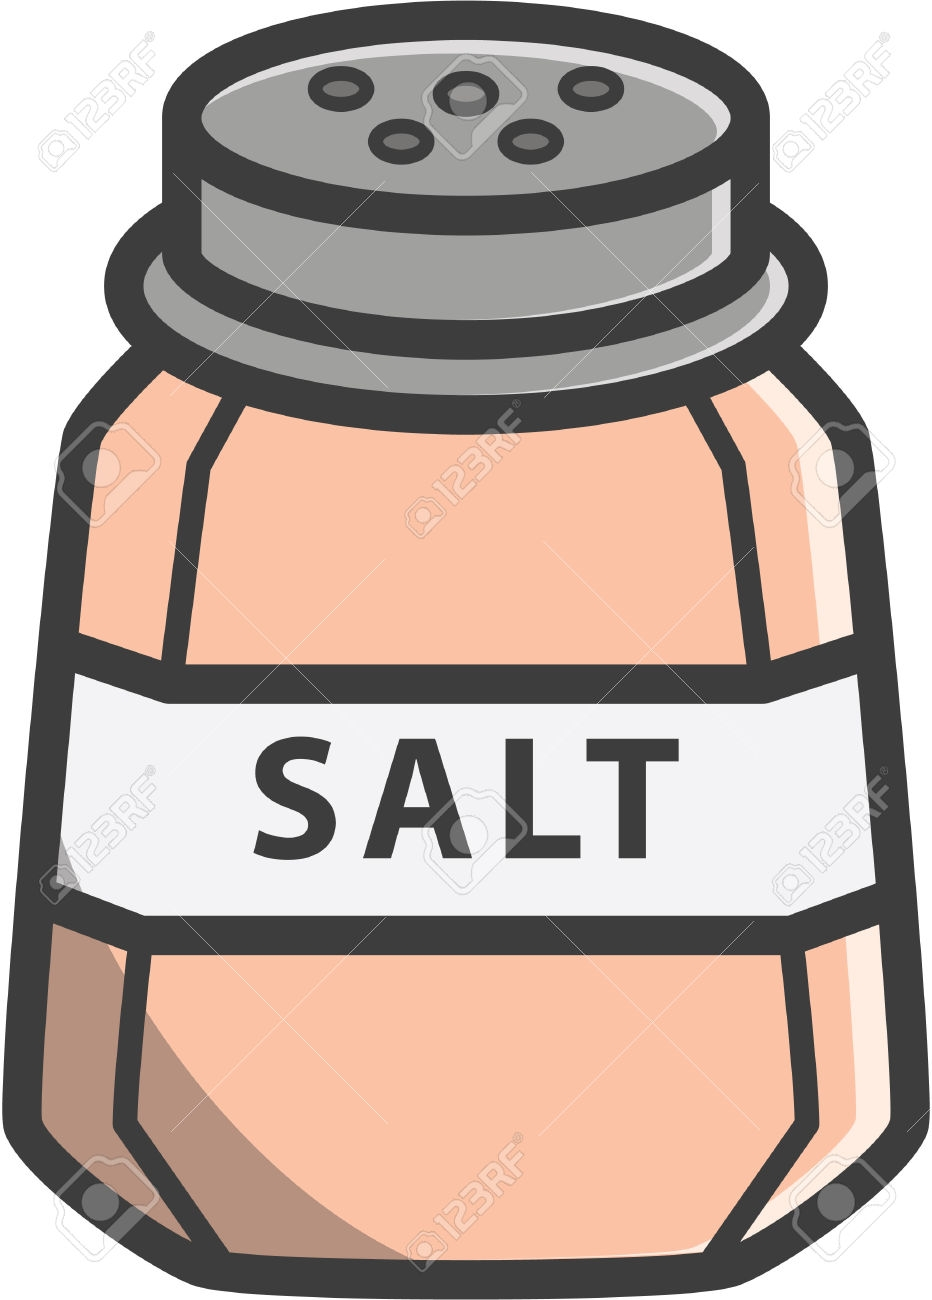 Salt clipart. Awesome gallery digital collection